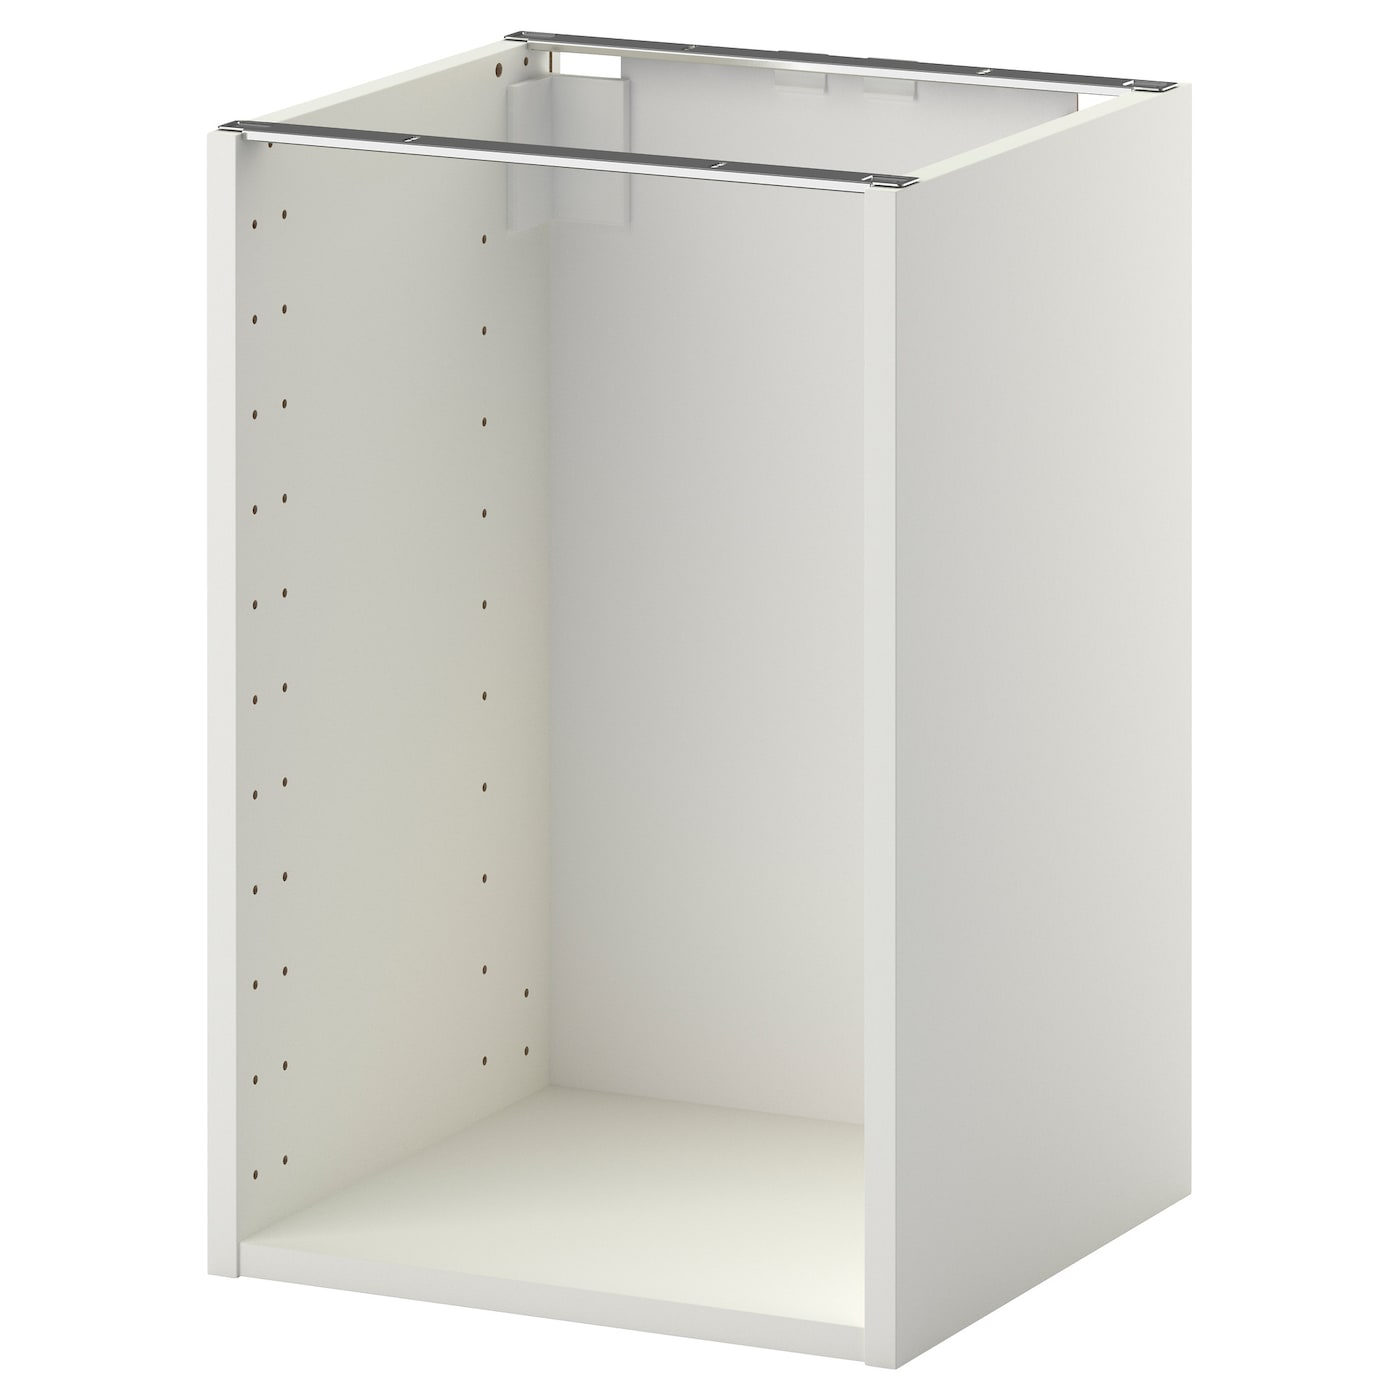 metod base cabinet frame white 40x37x60 cm ikea. Black Bedroom Furniture Sets. Home Design Ideas